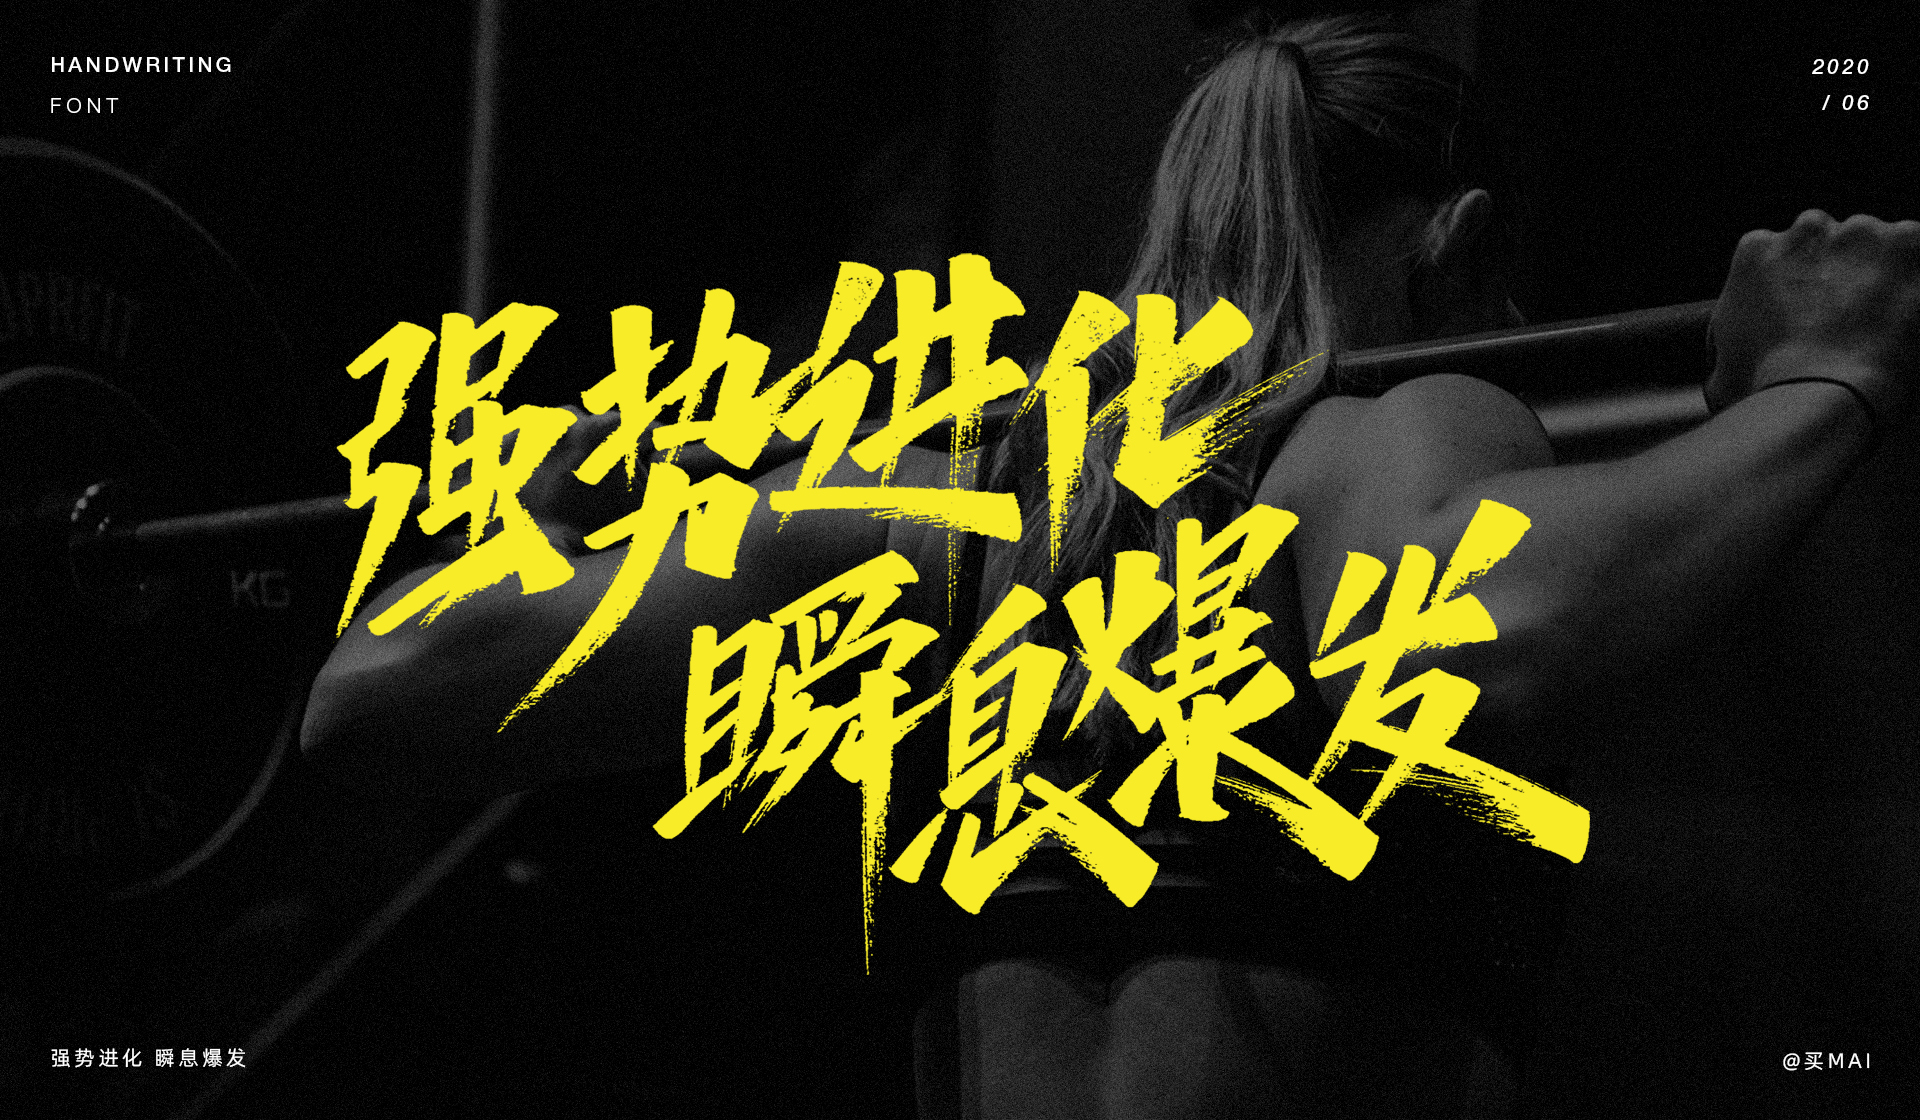 Interesting Chinese Creative Font Design-Handwriting of sports titles